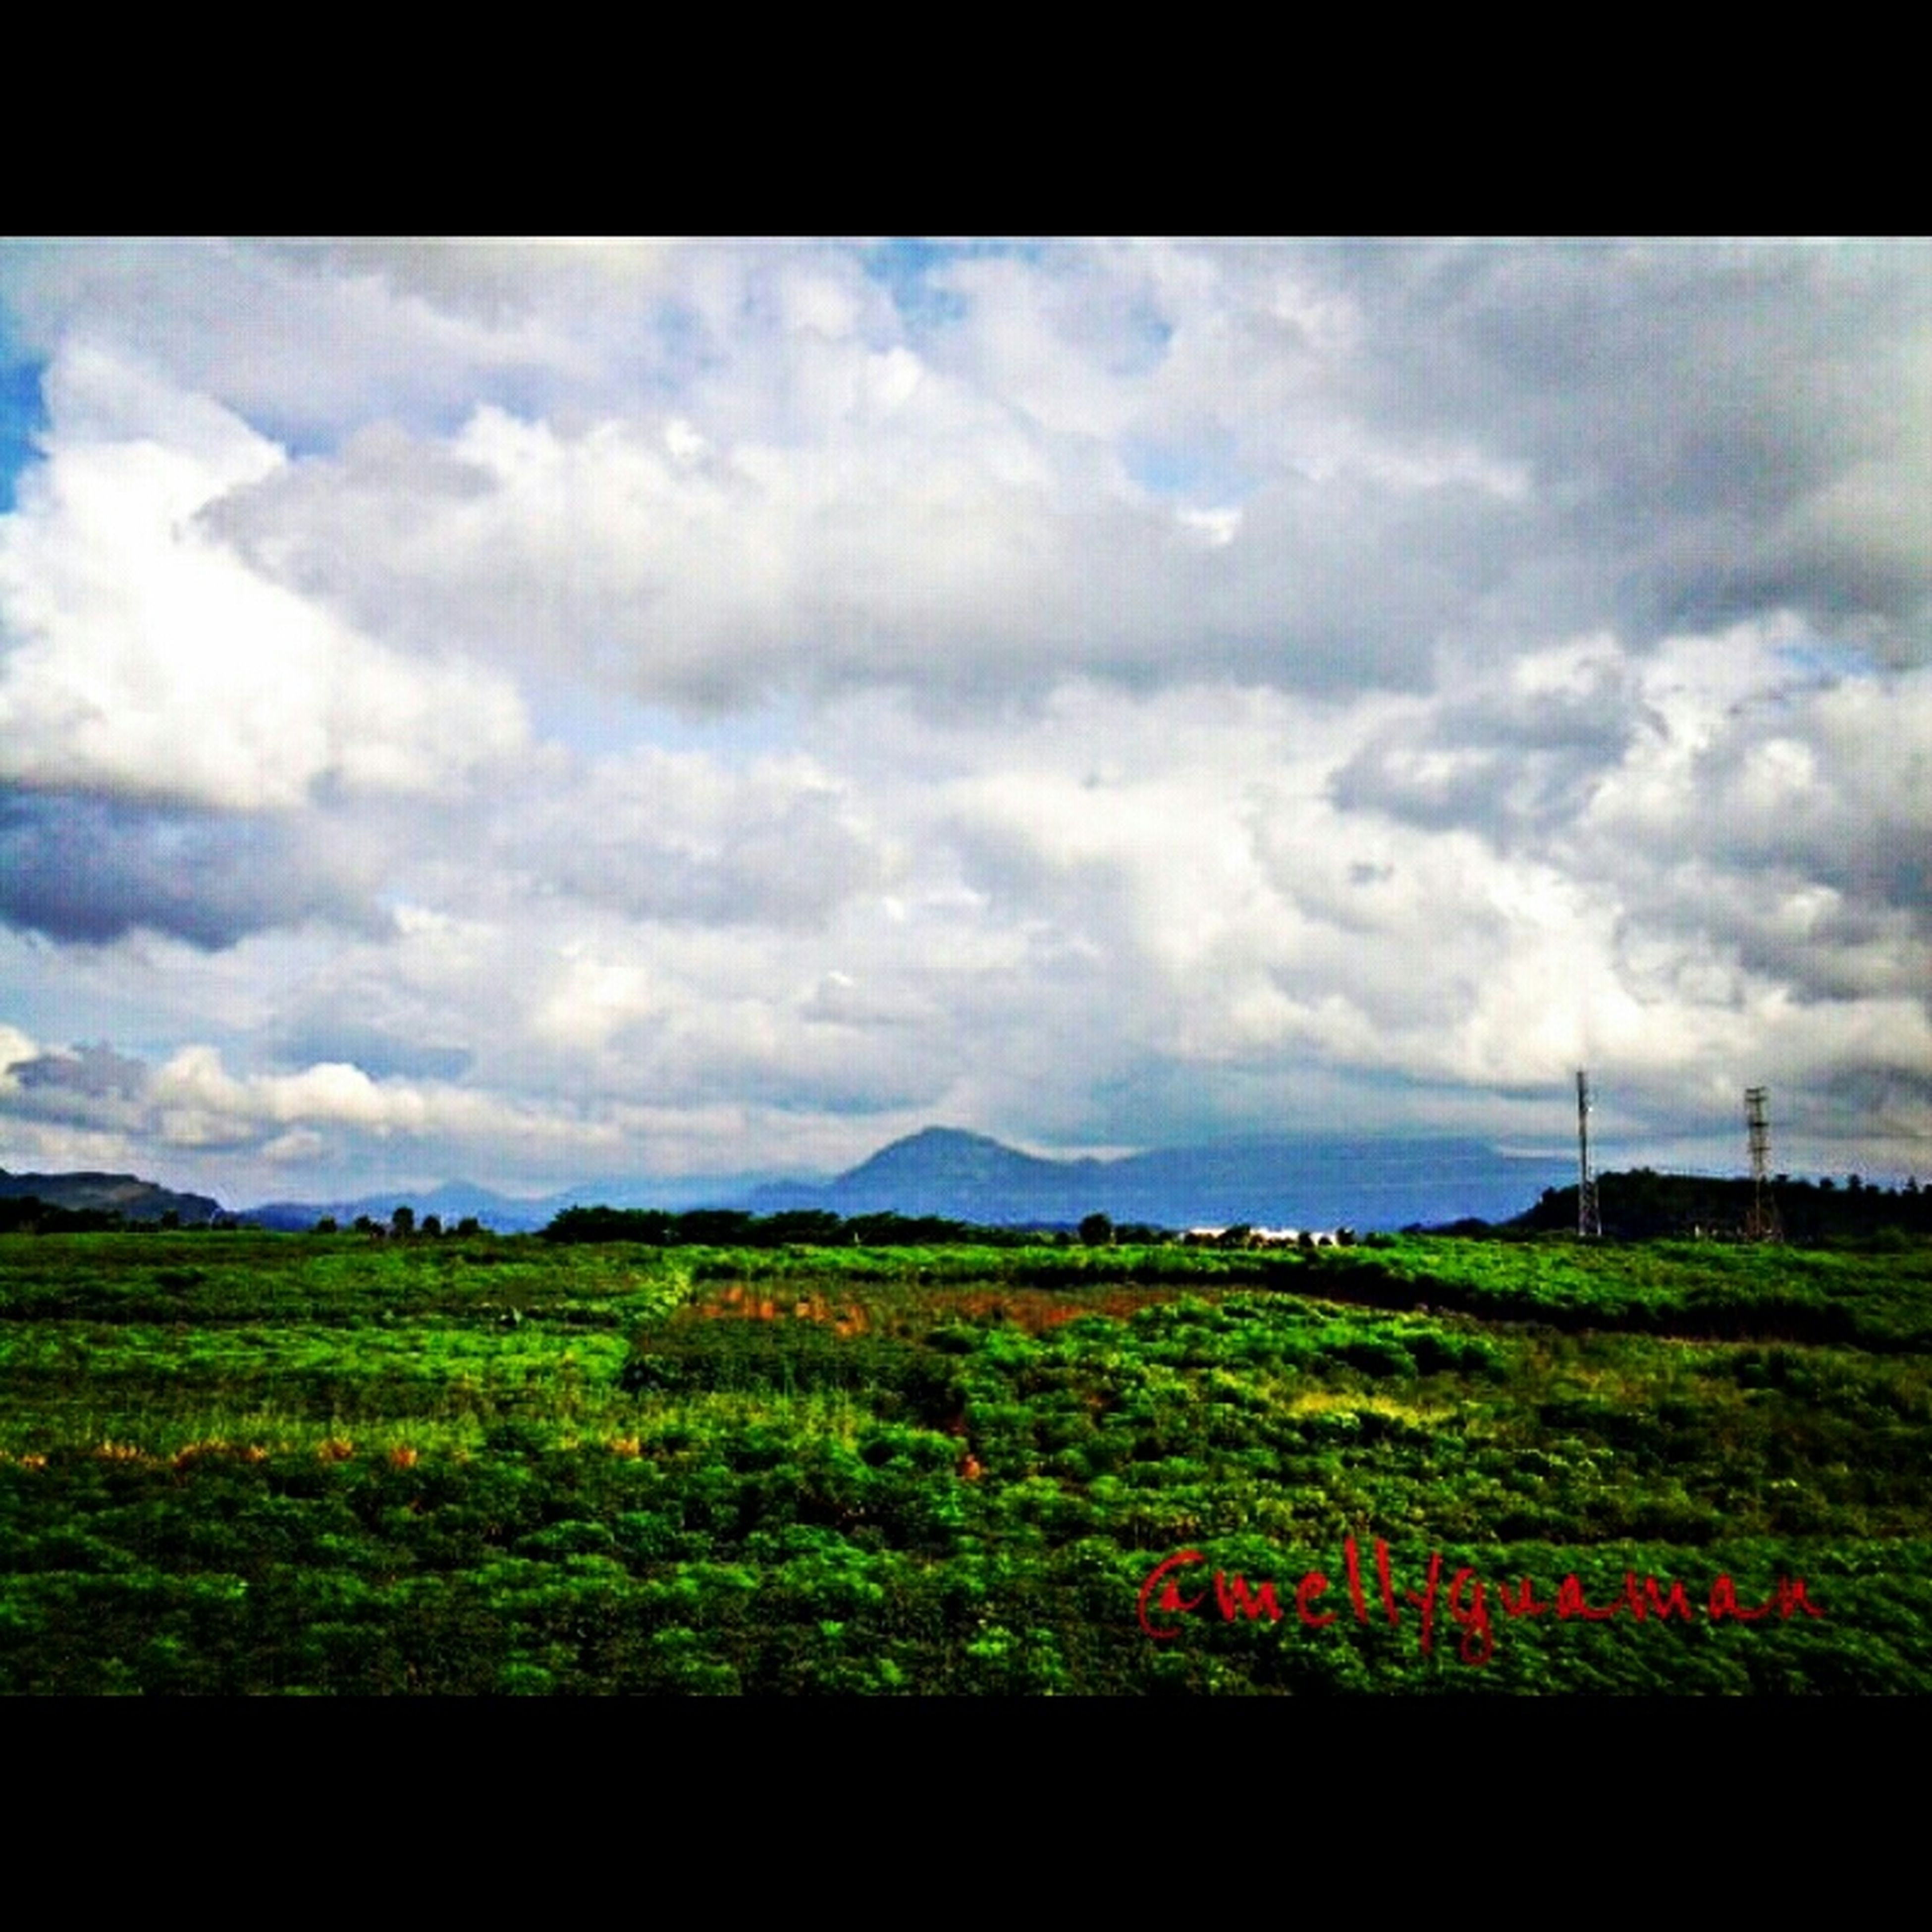 landscape, sky, field, tranquil scene, transfer print, cloud - sky, tranquility, scenics, beauty in nature, cloudy, rural scene, grass, nature, cloud, agriculture, green color, auto post production filter, horizon over land, growth, farm